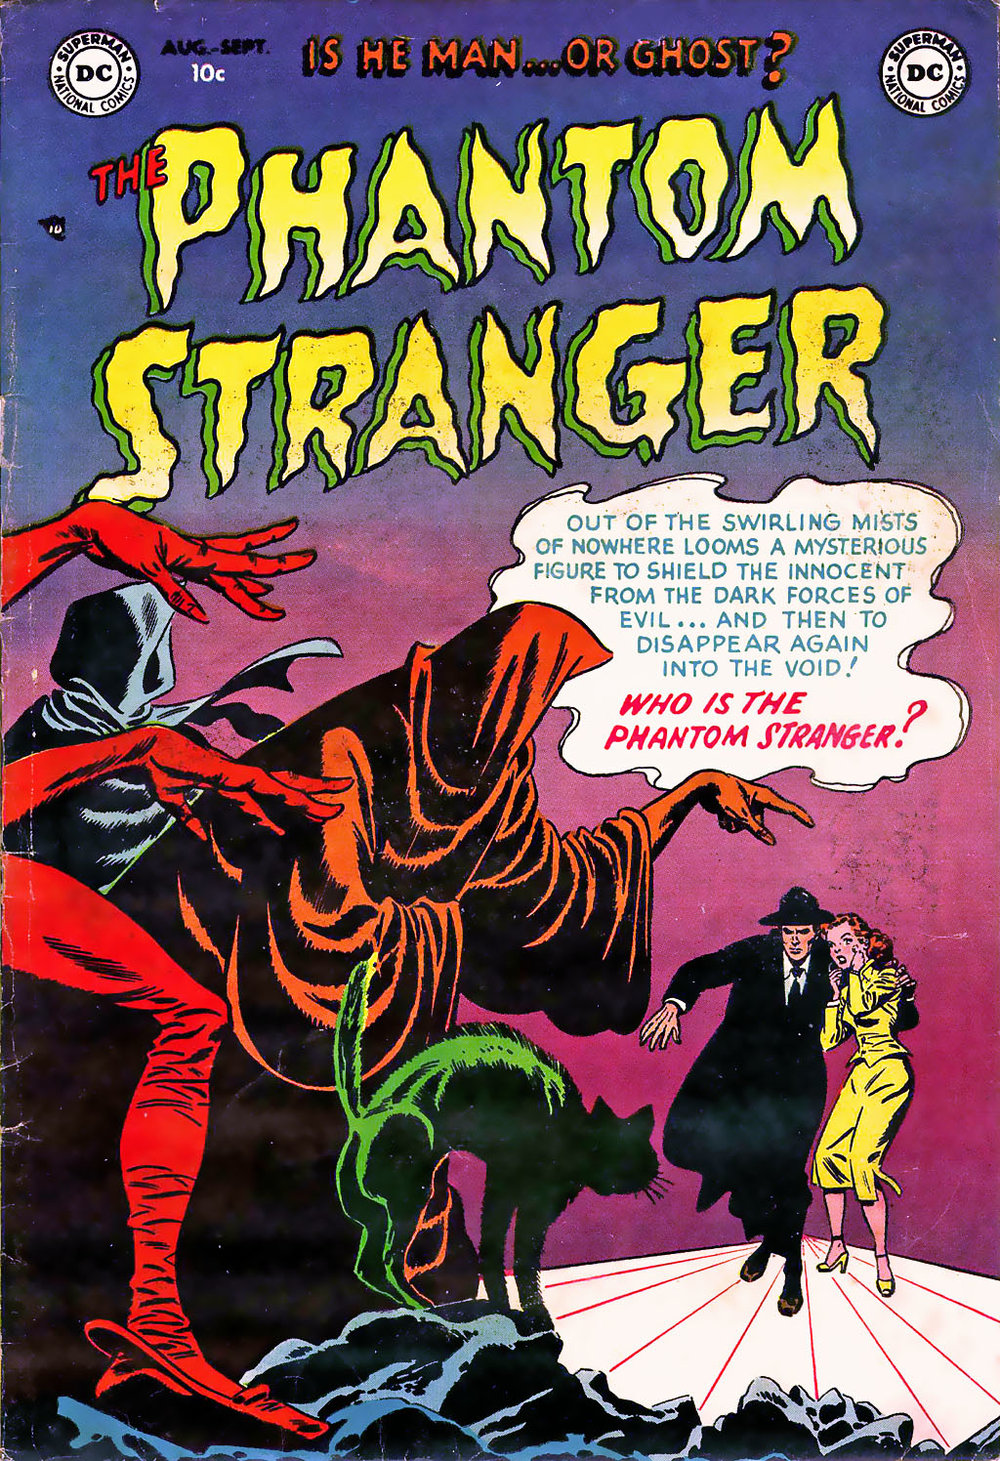 The Phantom Stranger (1952) #1 Carmine Infantino Sy Barry